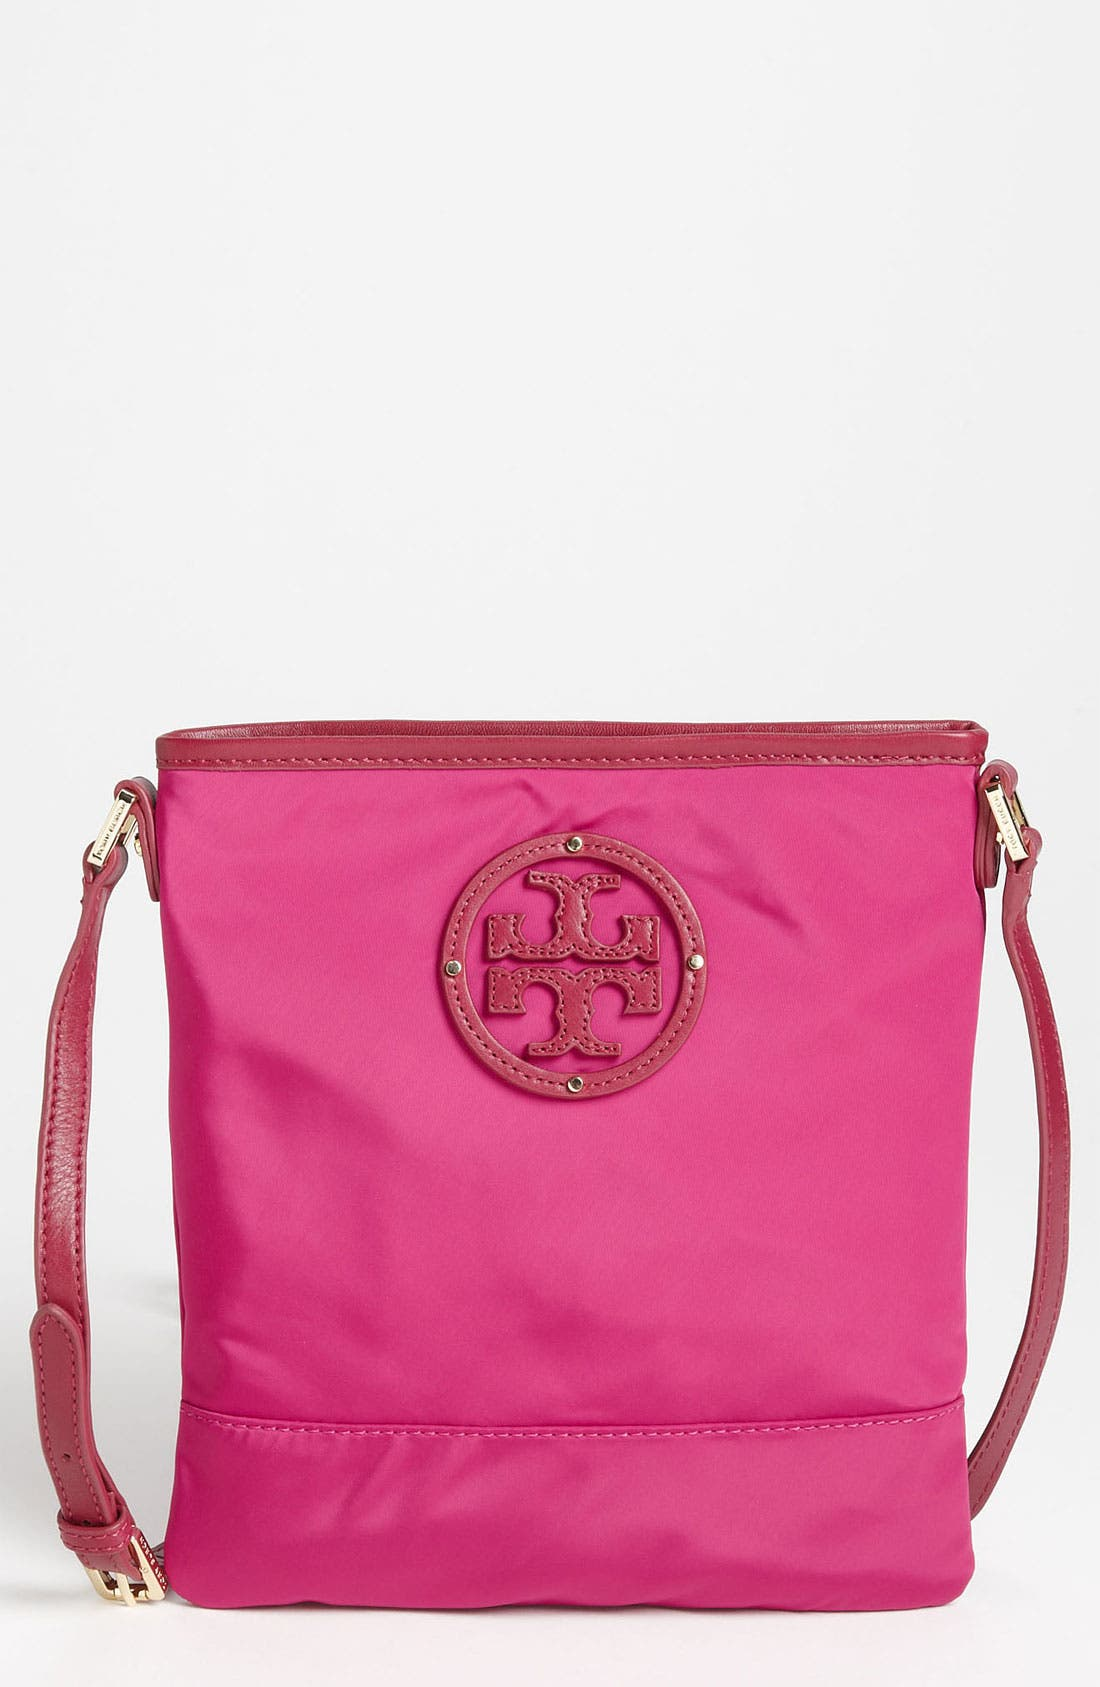 Alternate Image 1 Selected - Tory Burch Stacked Logo Crossbody Bag